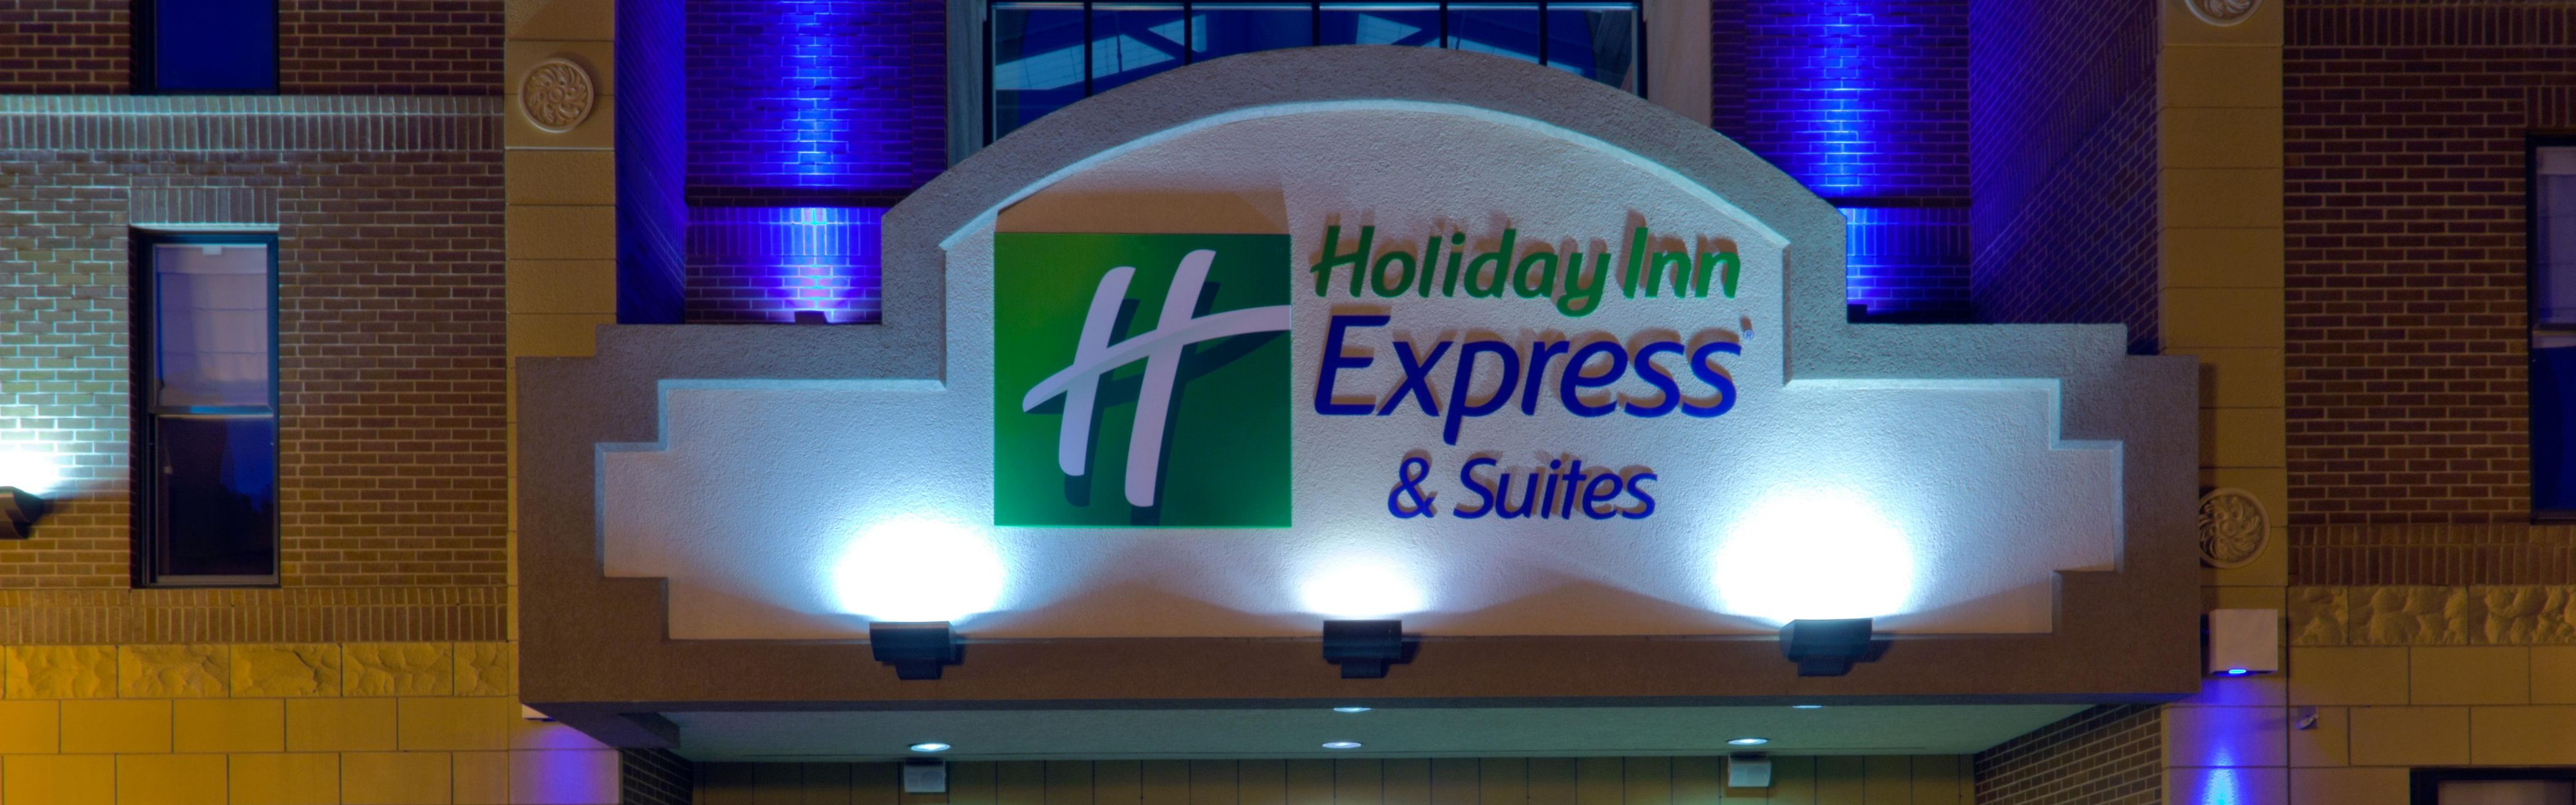 Holiday Inn Express & Suites Deadwood-Gold Dust Casino image 0